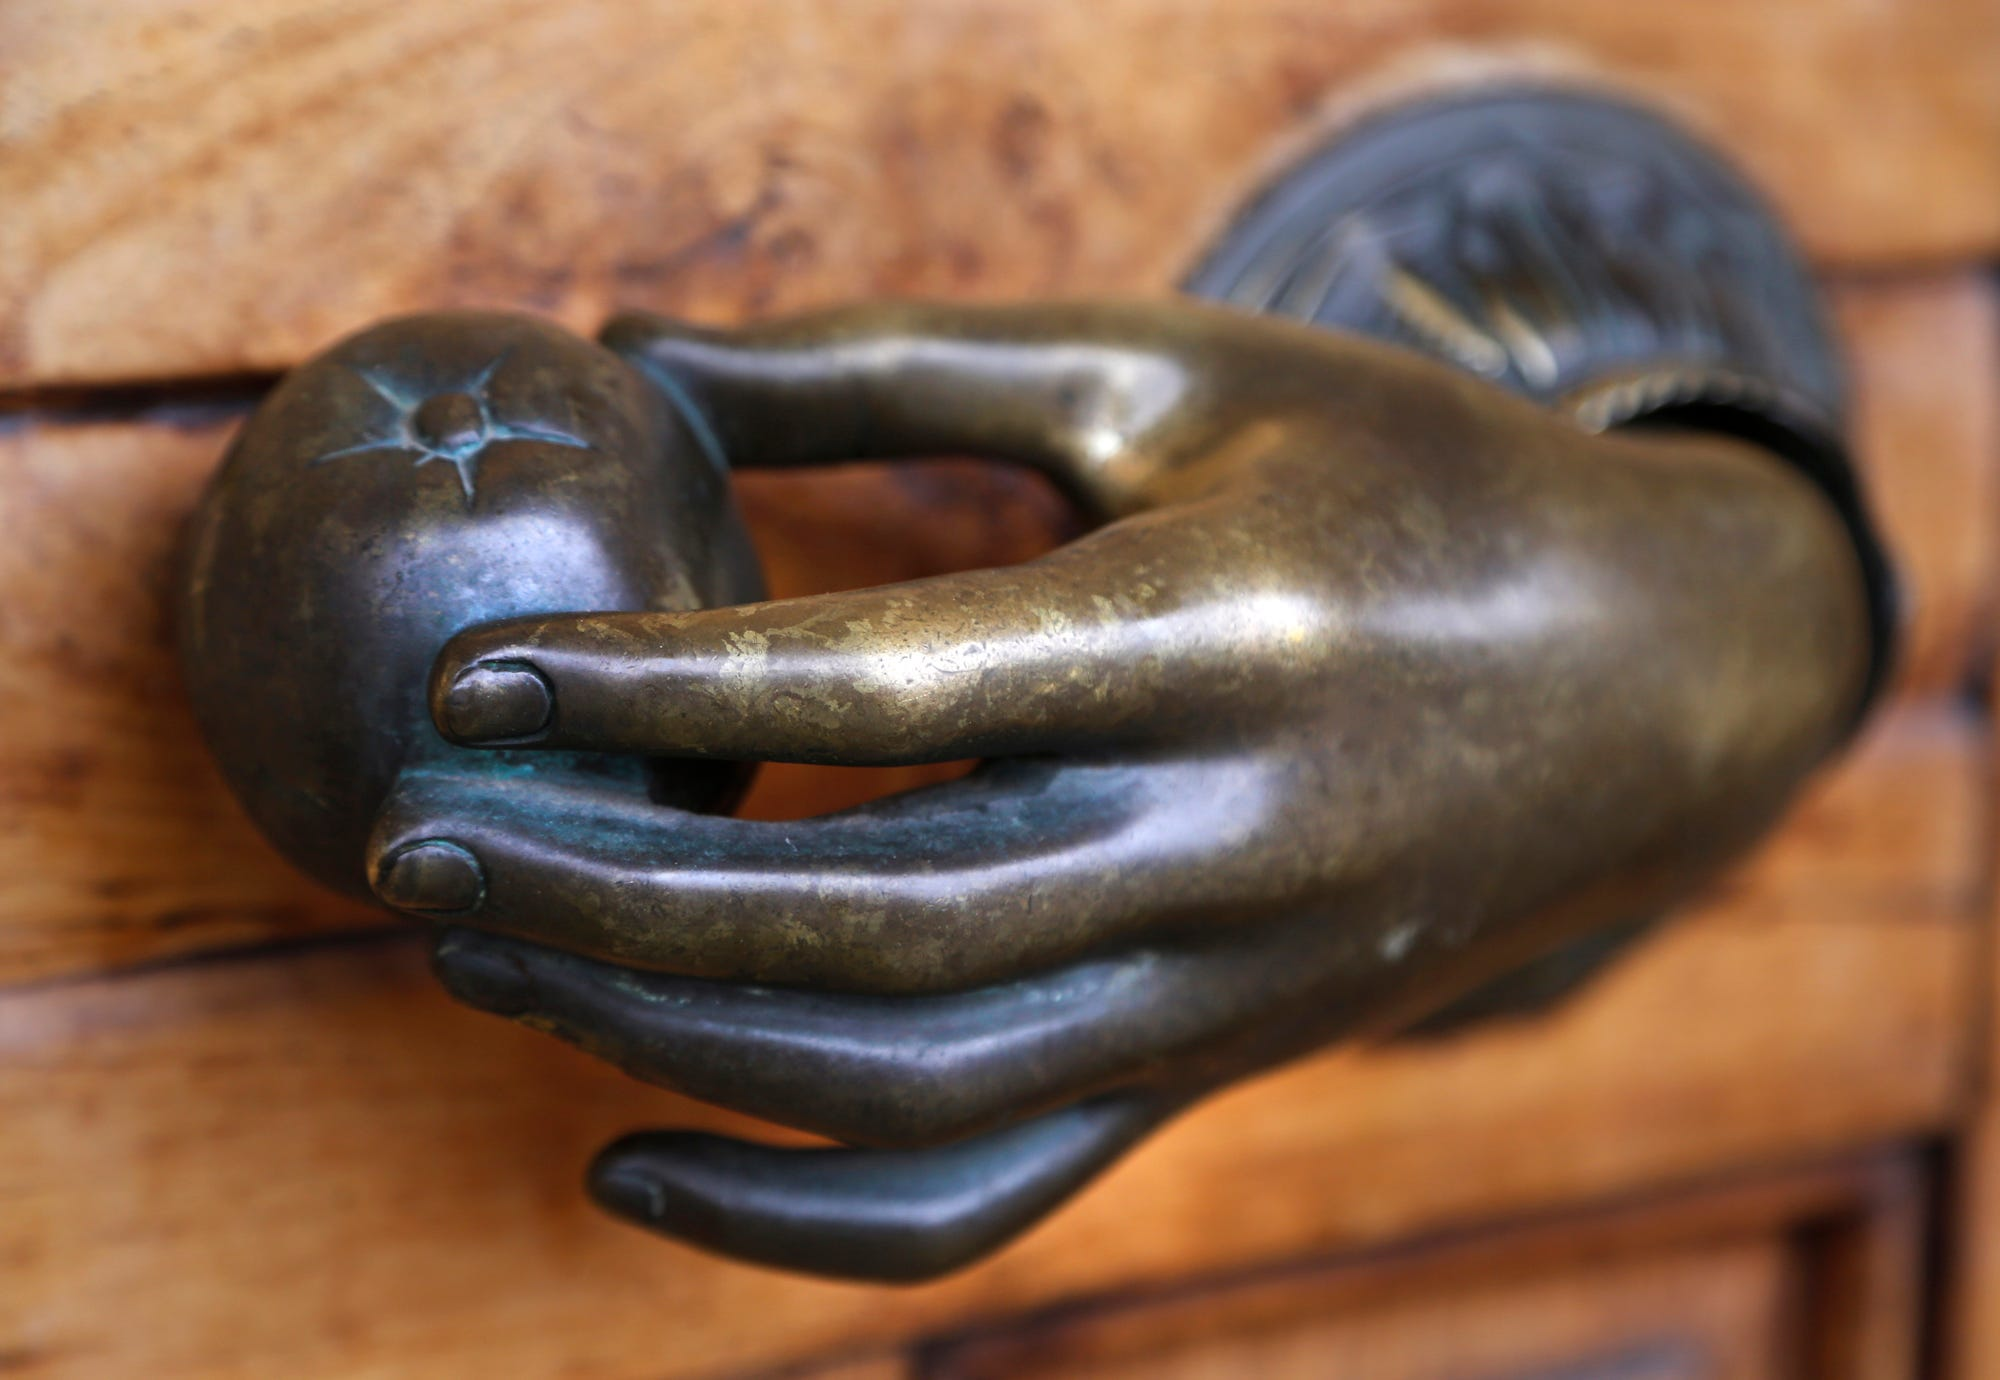 The distinctive door knob of Interior Objects Monday, November 26, 2018, at 2200 Elmwood Avenue, Suite A4, in the Market Square Shopping Center. Interior Objects announced on its Facebook page that it would be closing its doors. A liquidation sale will begin Thursday, November 29 at 10 a.m.